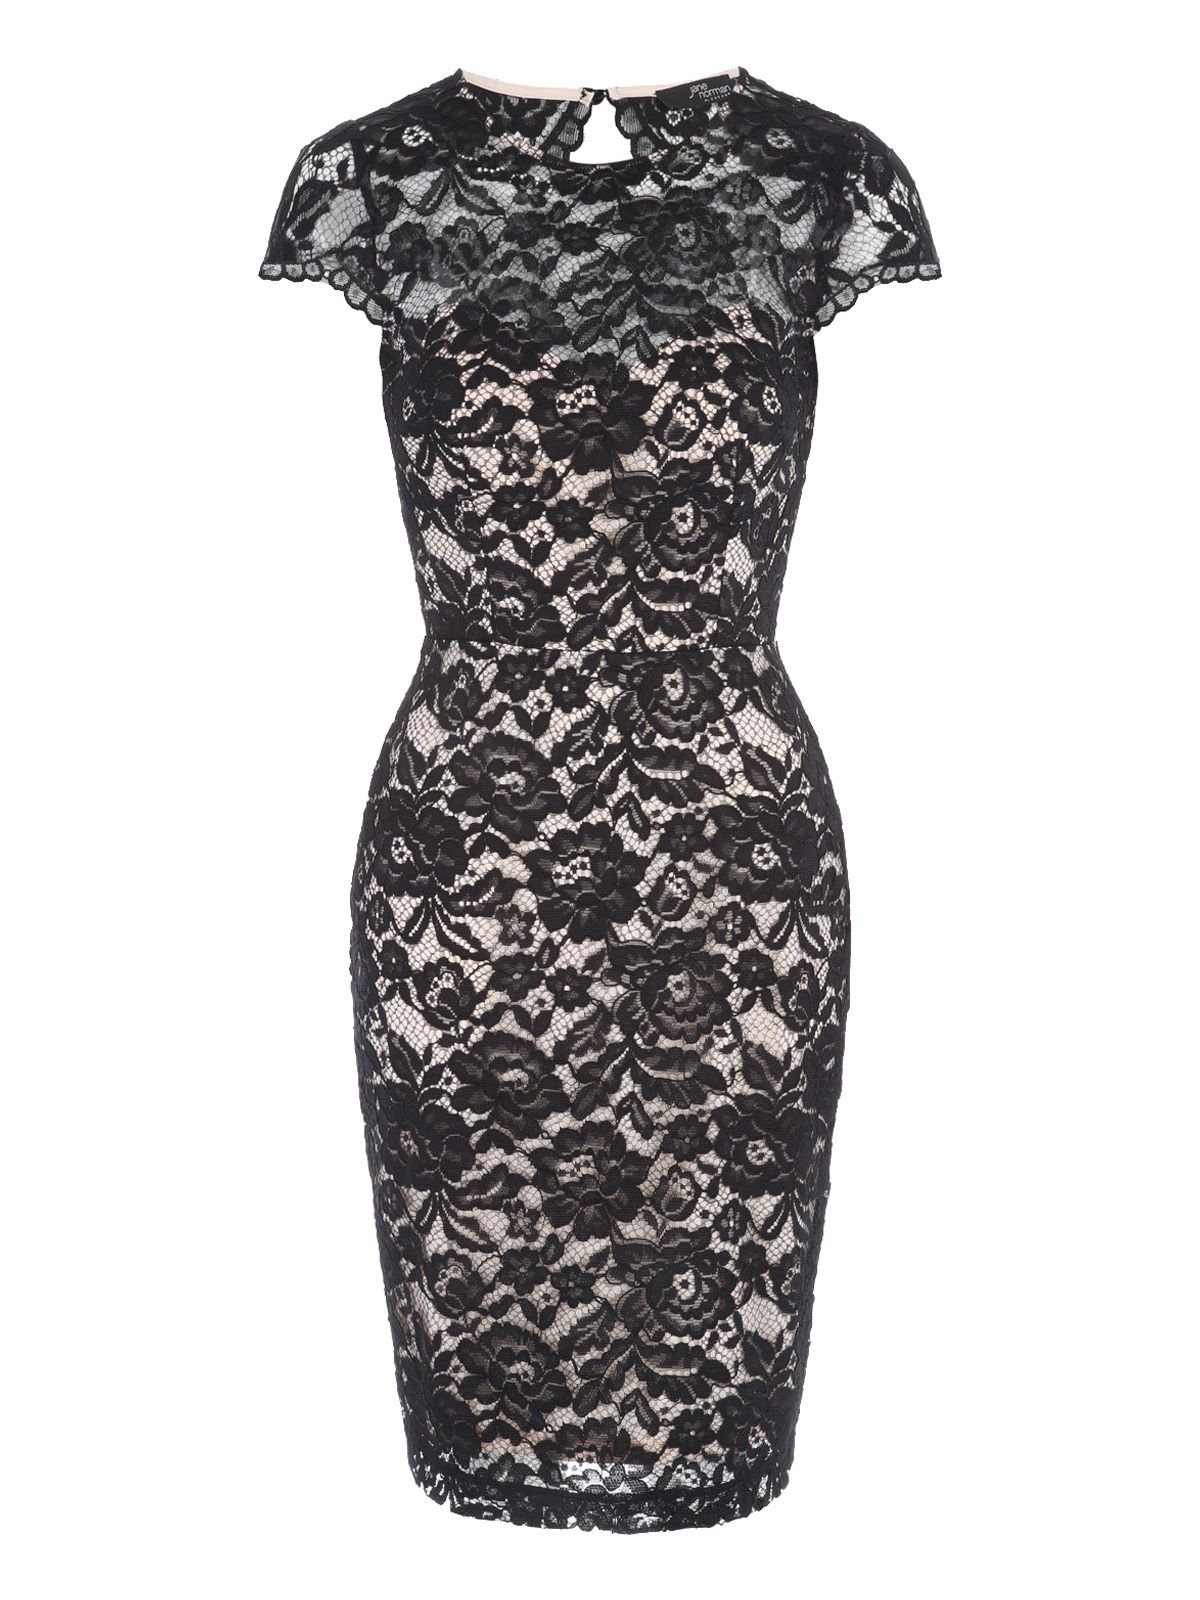 Jane Norman Scallop Lace Bodycon Dress, Black